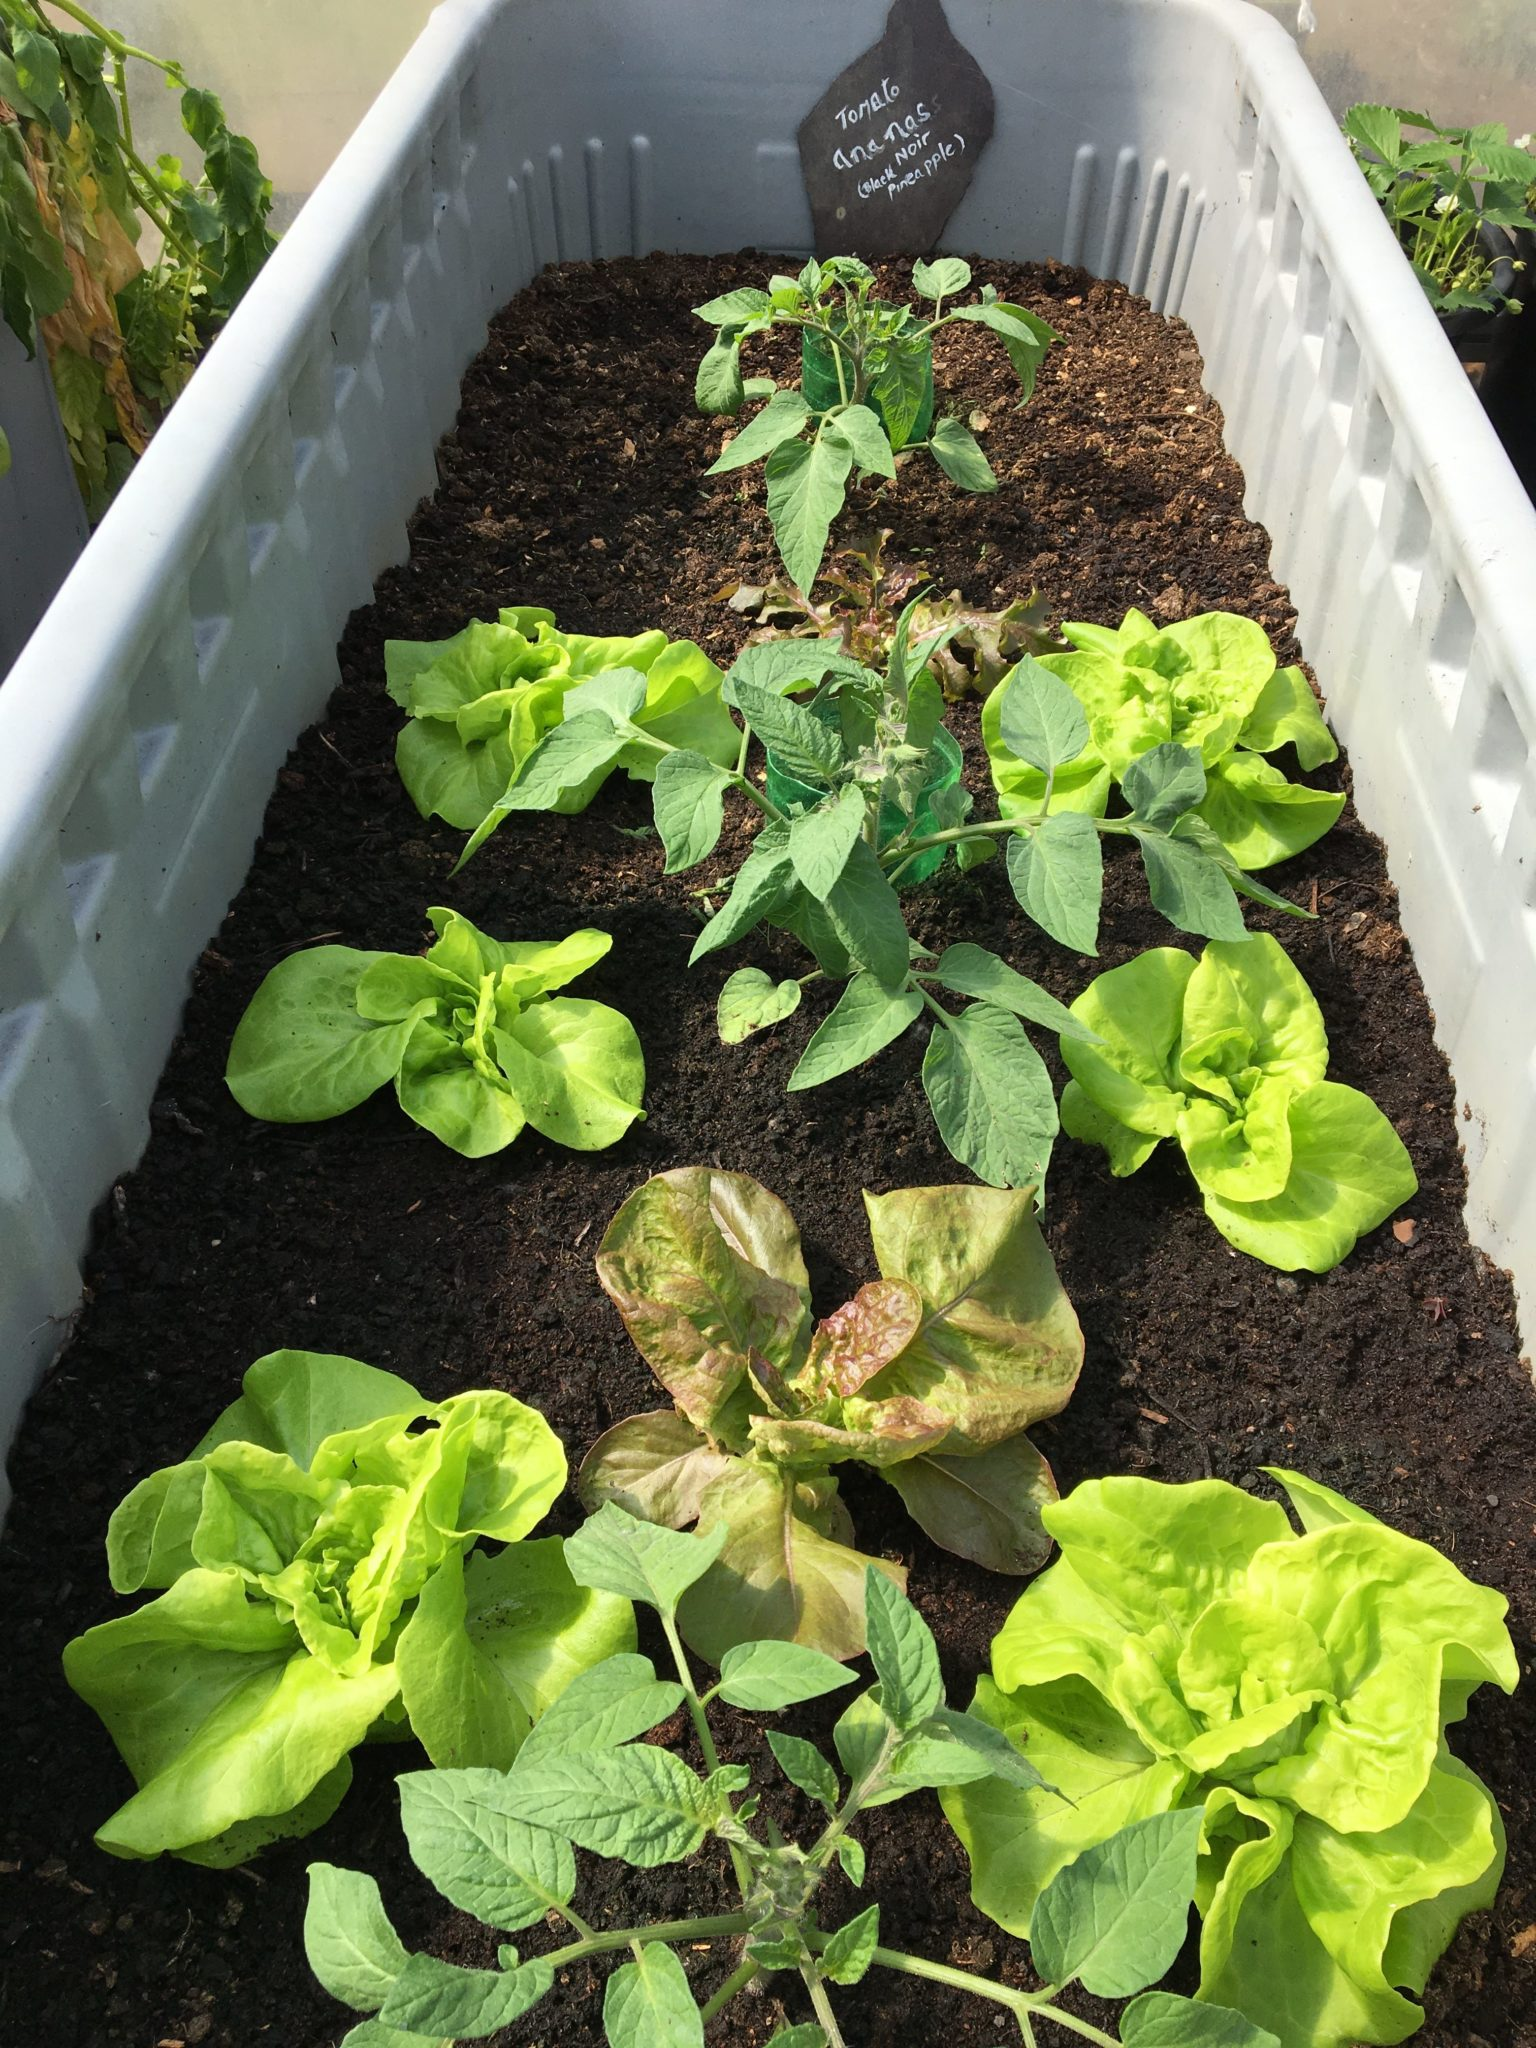 Lettuce and tomato plants